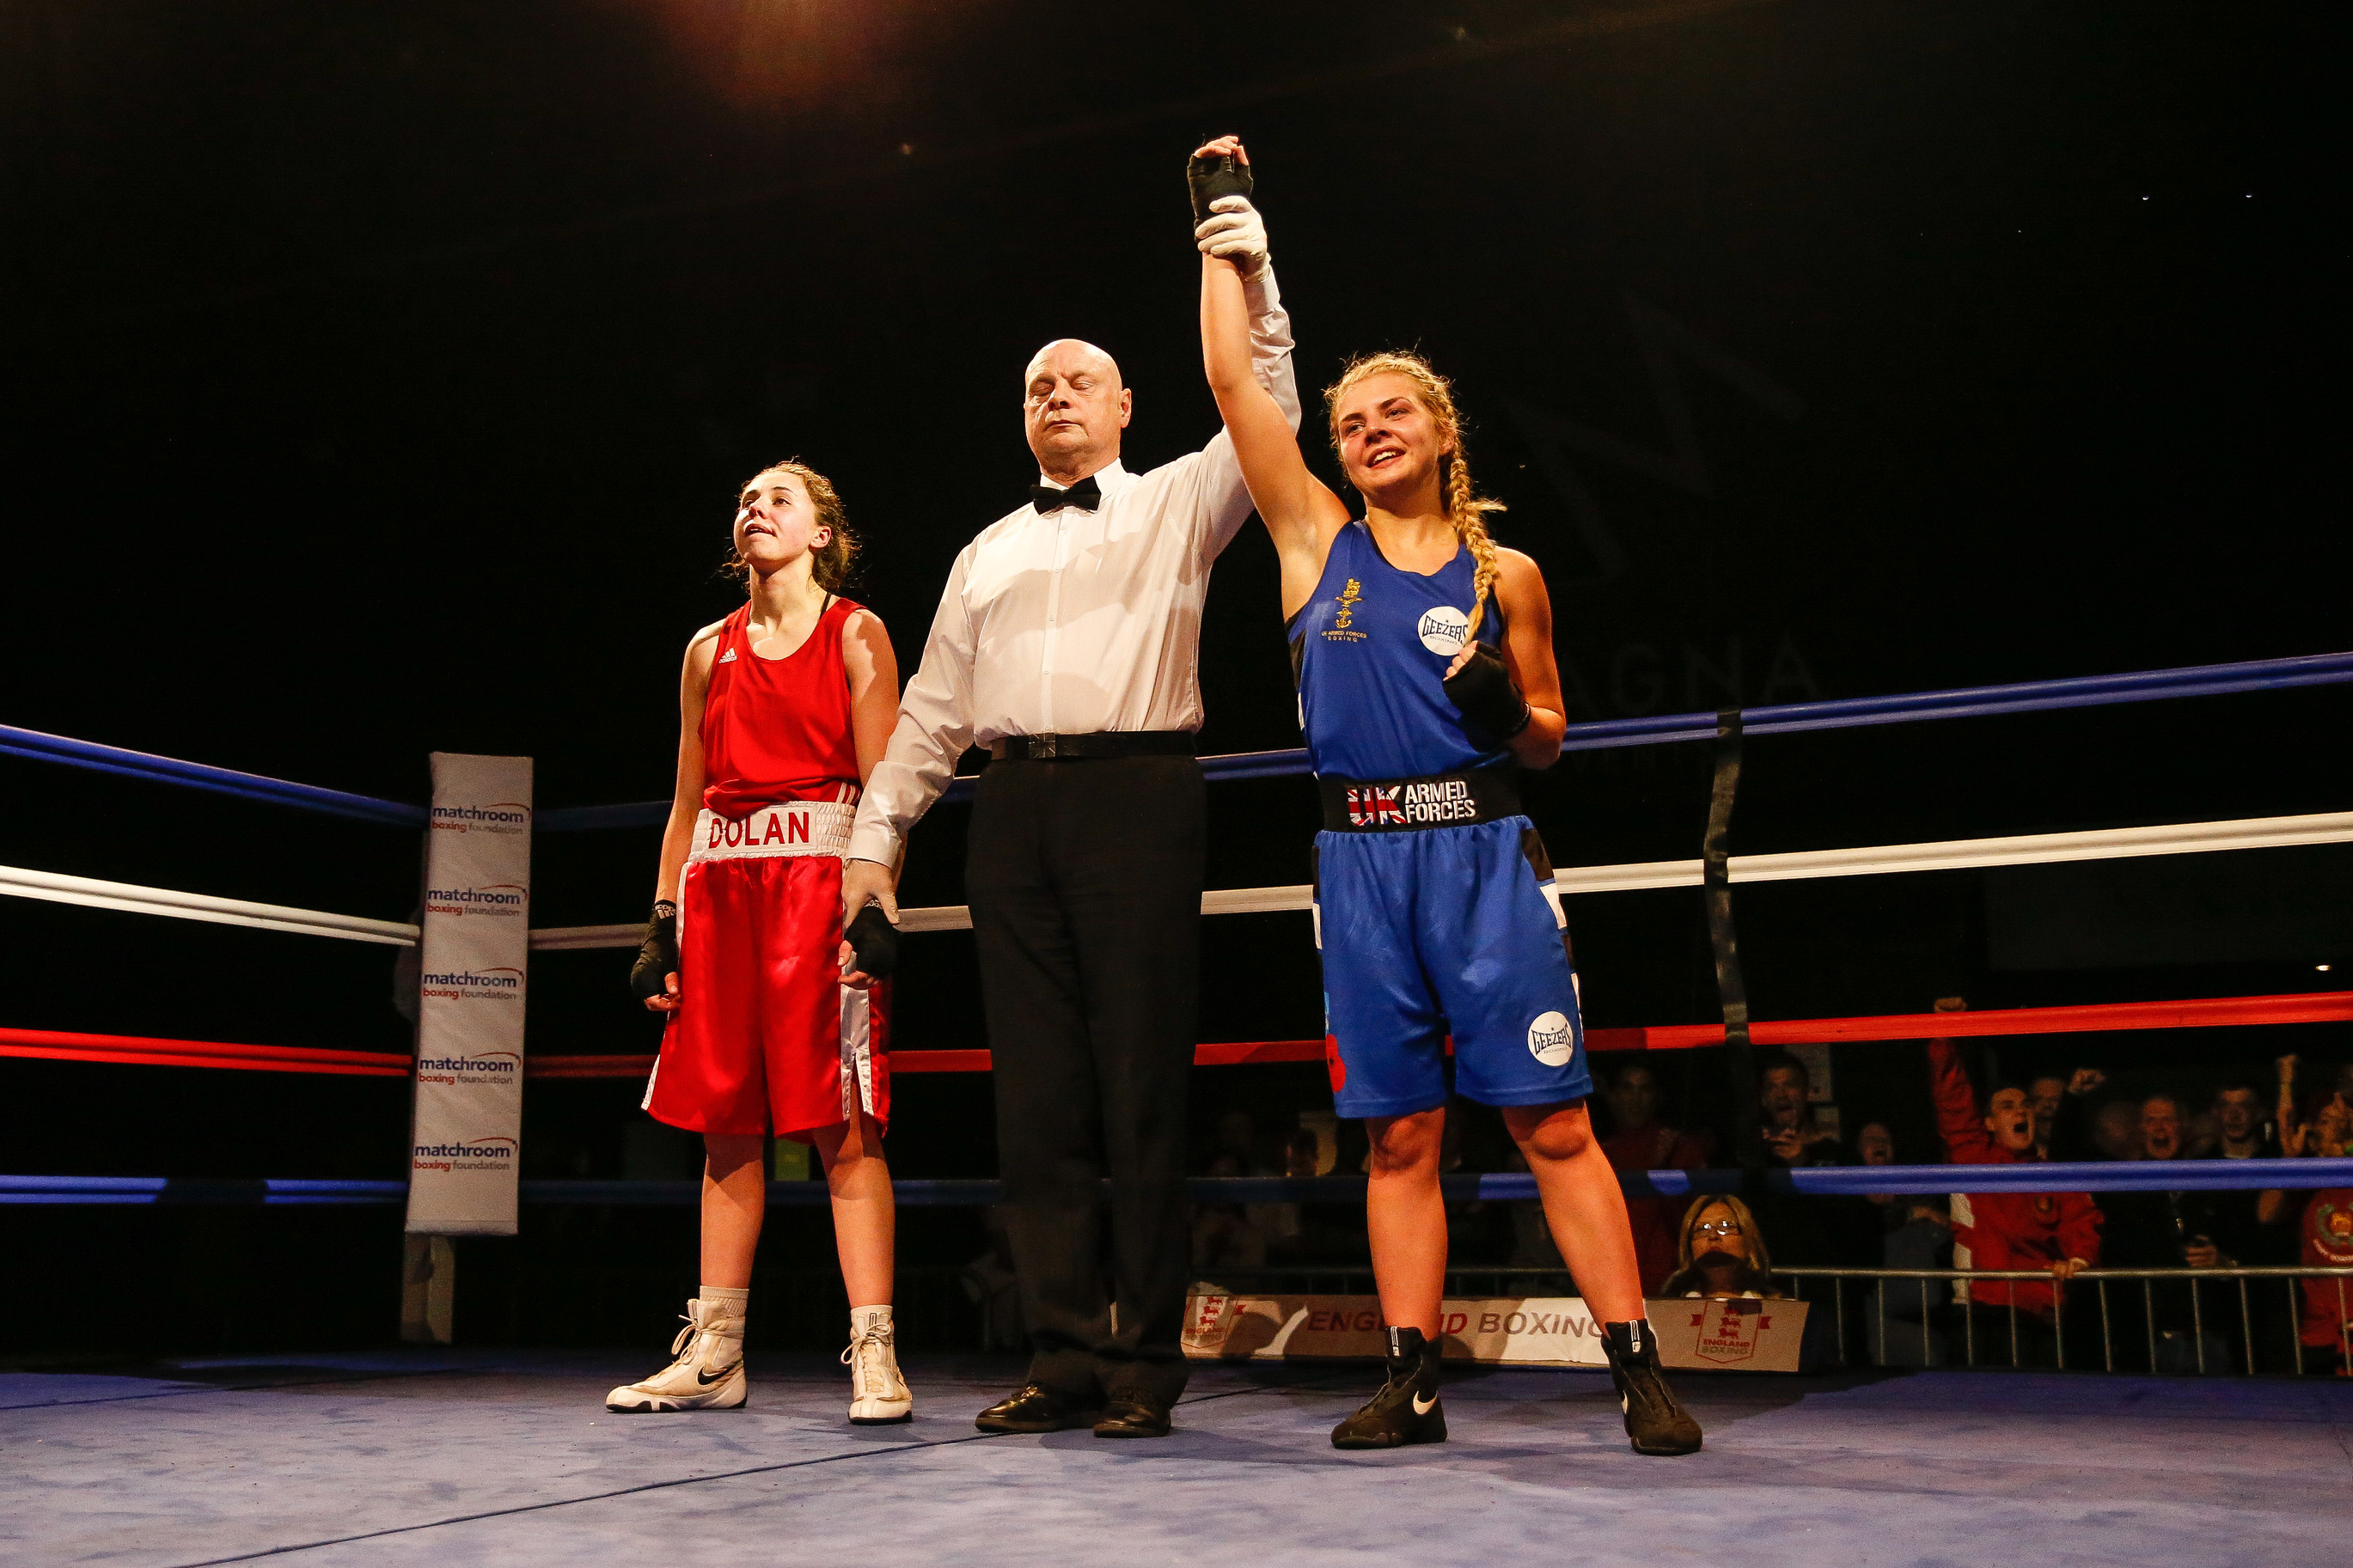 b1484a5efd The Army Sport Control Board through the Army Elite Sport Programme has  appointed a full-time GB Boxing coach at its base in Aldershot as part of a  ...